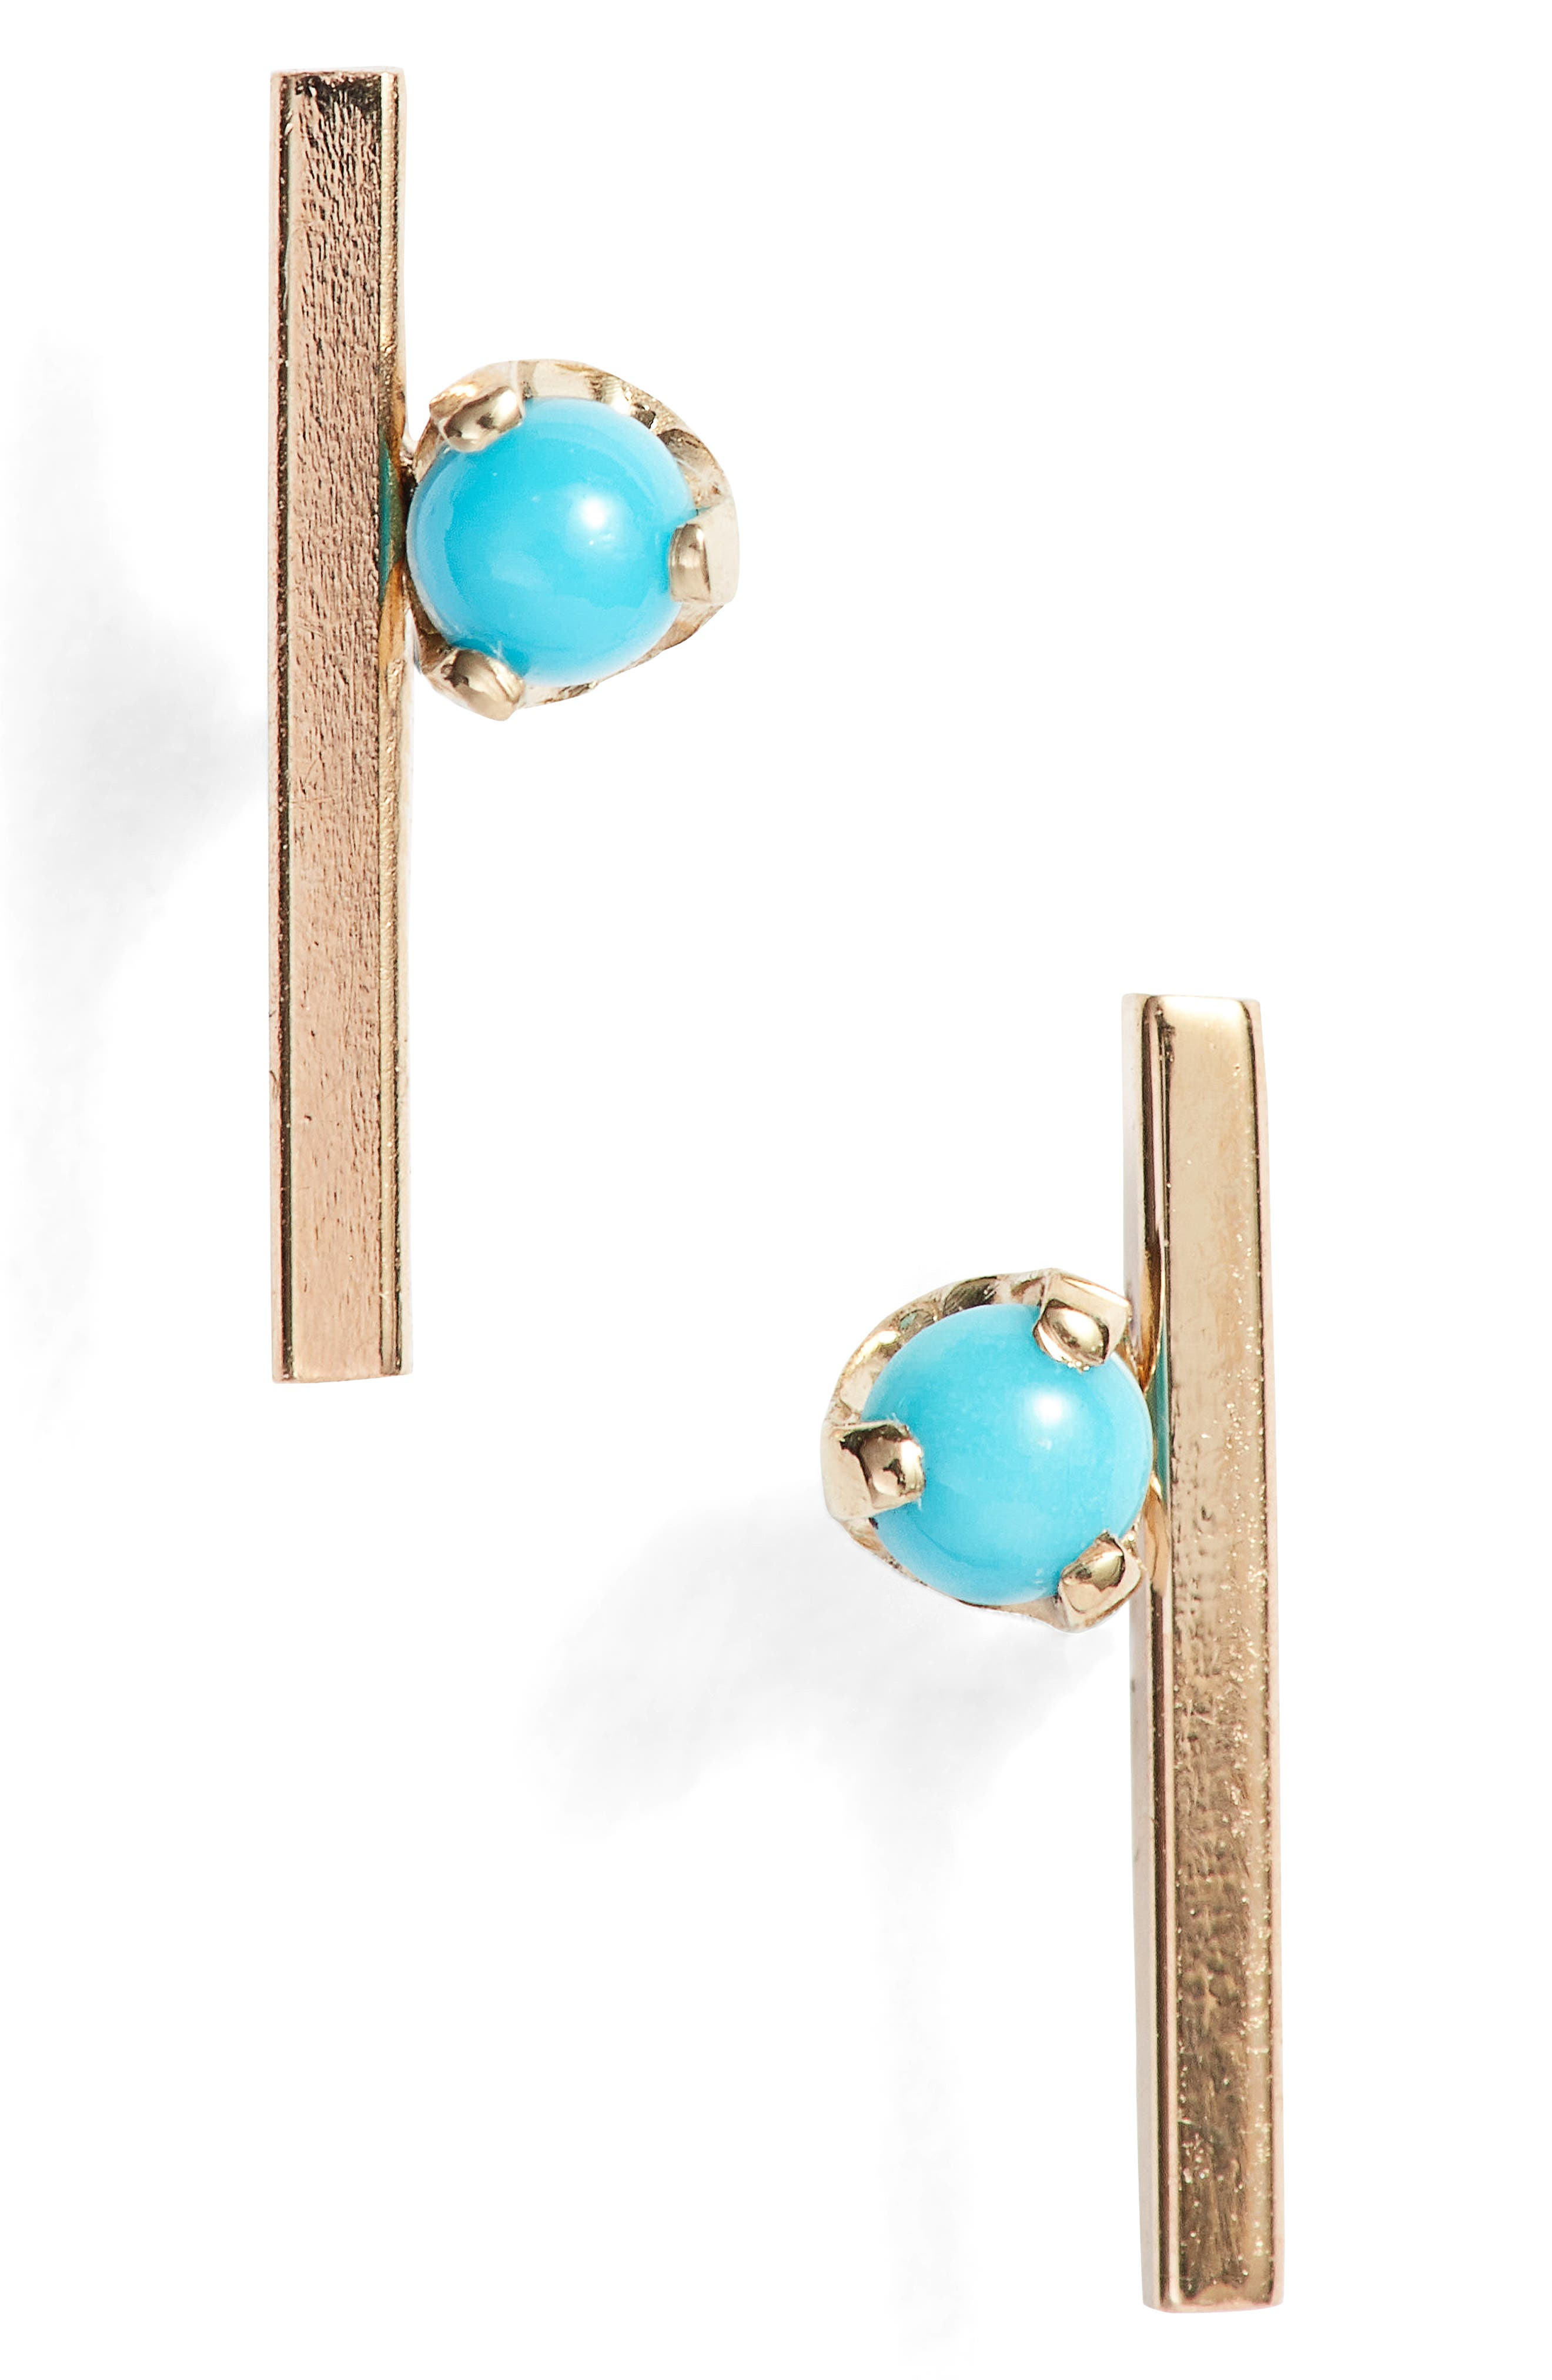 Floating Bar Turquoise Stud Earrings,                         Main,                         color, YELLOW GOLD/ TURQUOISE